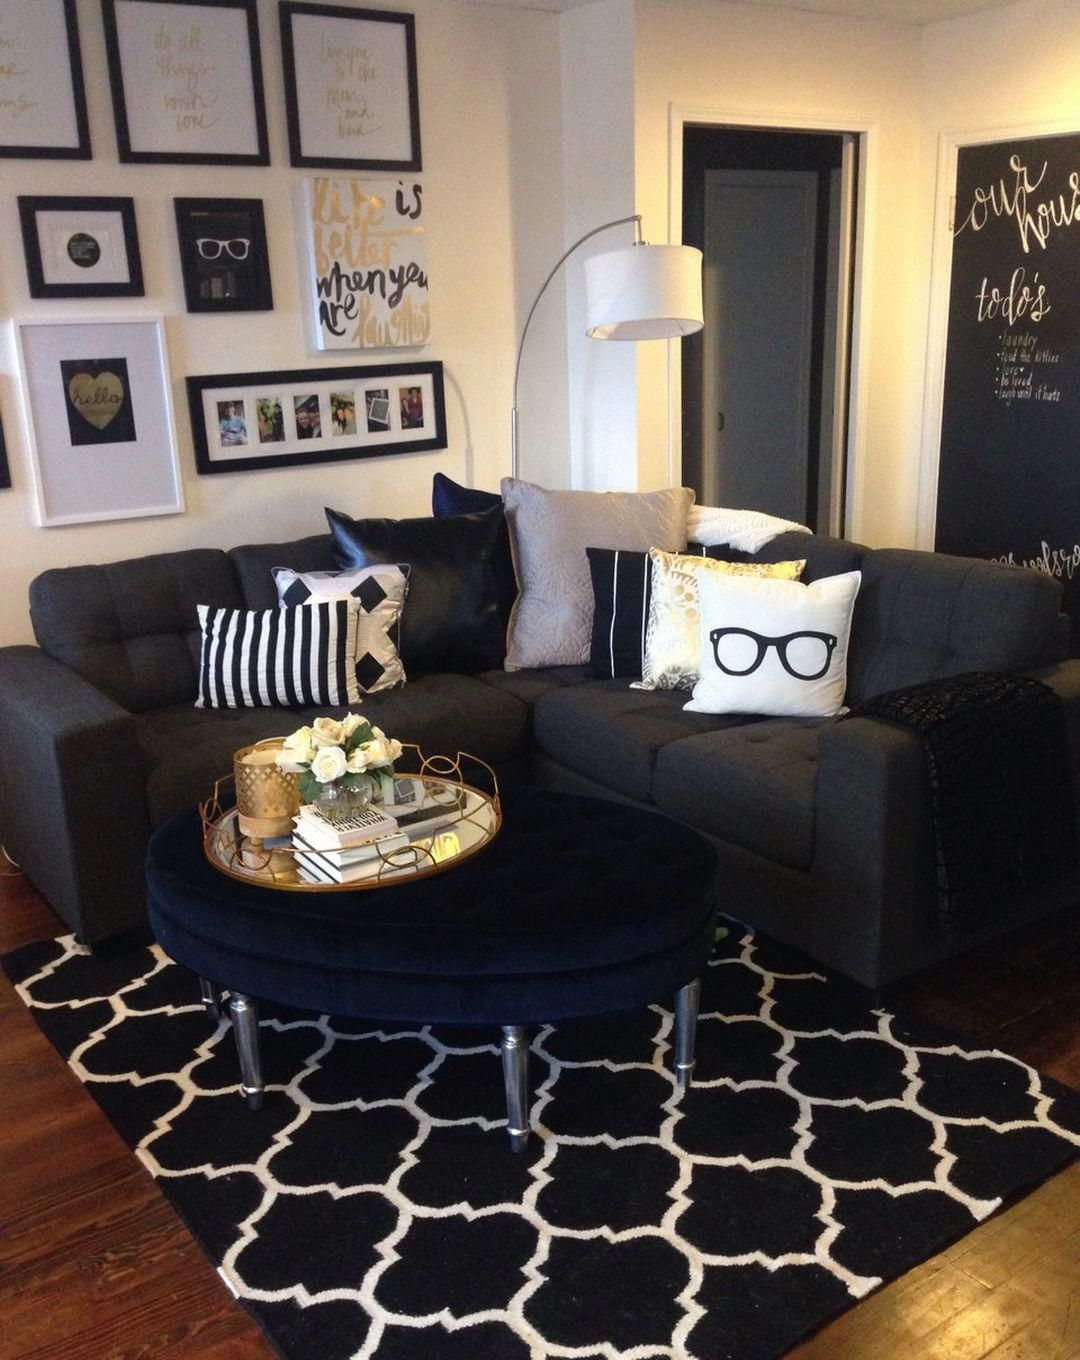 New Apartment Decorating Ideas On A Budget 19 Modernhomedecordiy Apartment Decorating On A Budget First Apartment Decorating Small Apartment Decorating